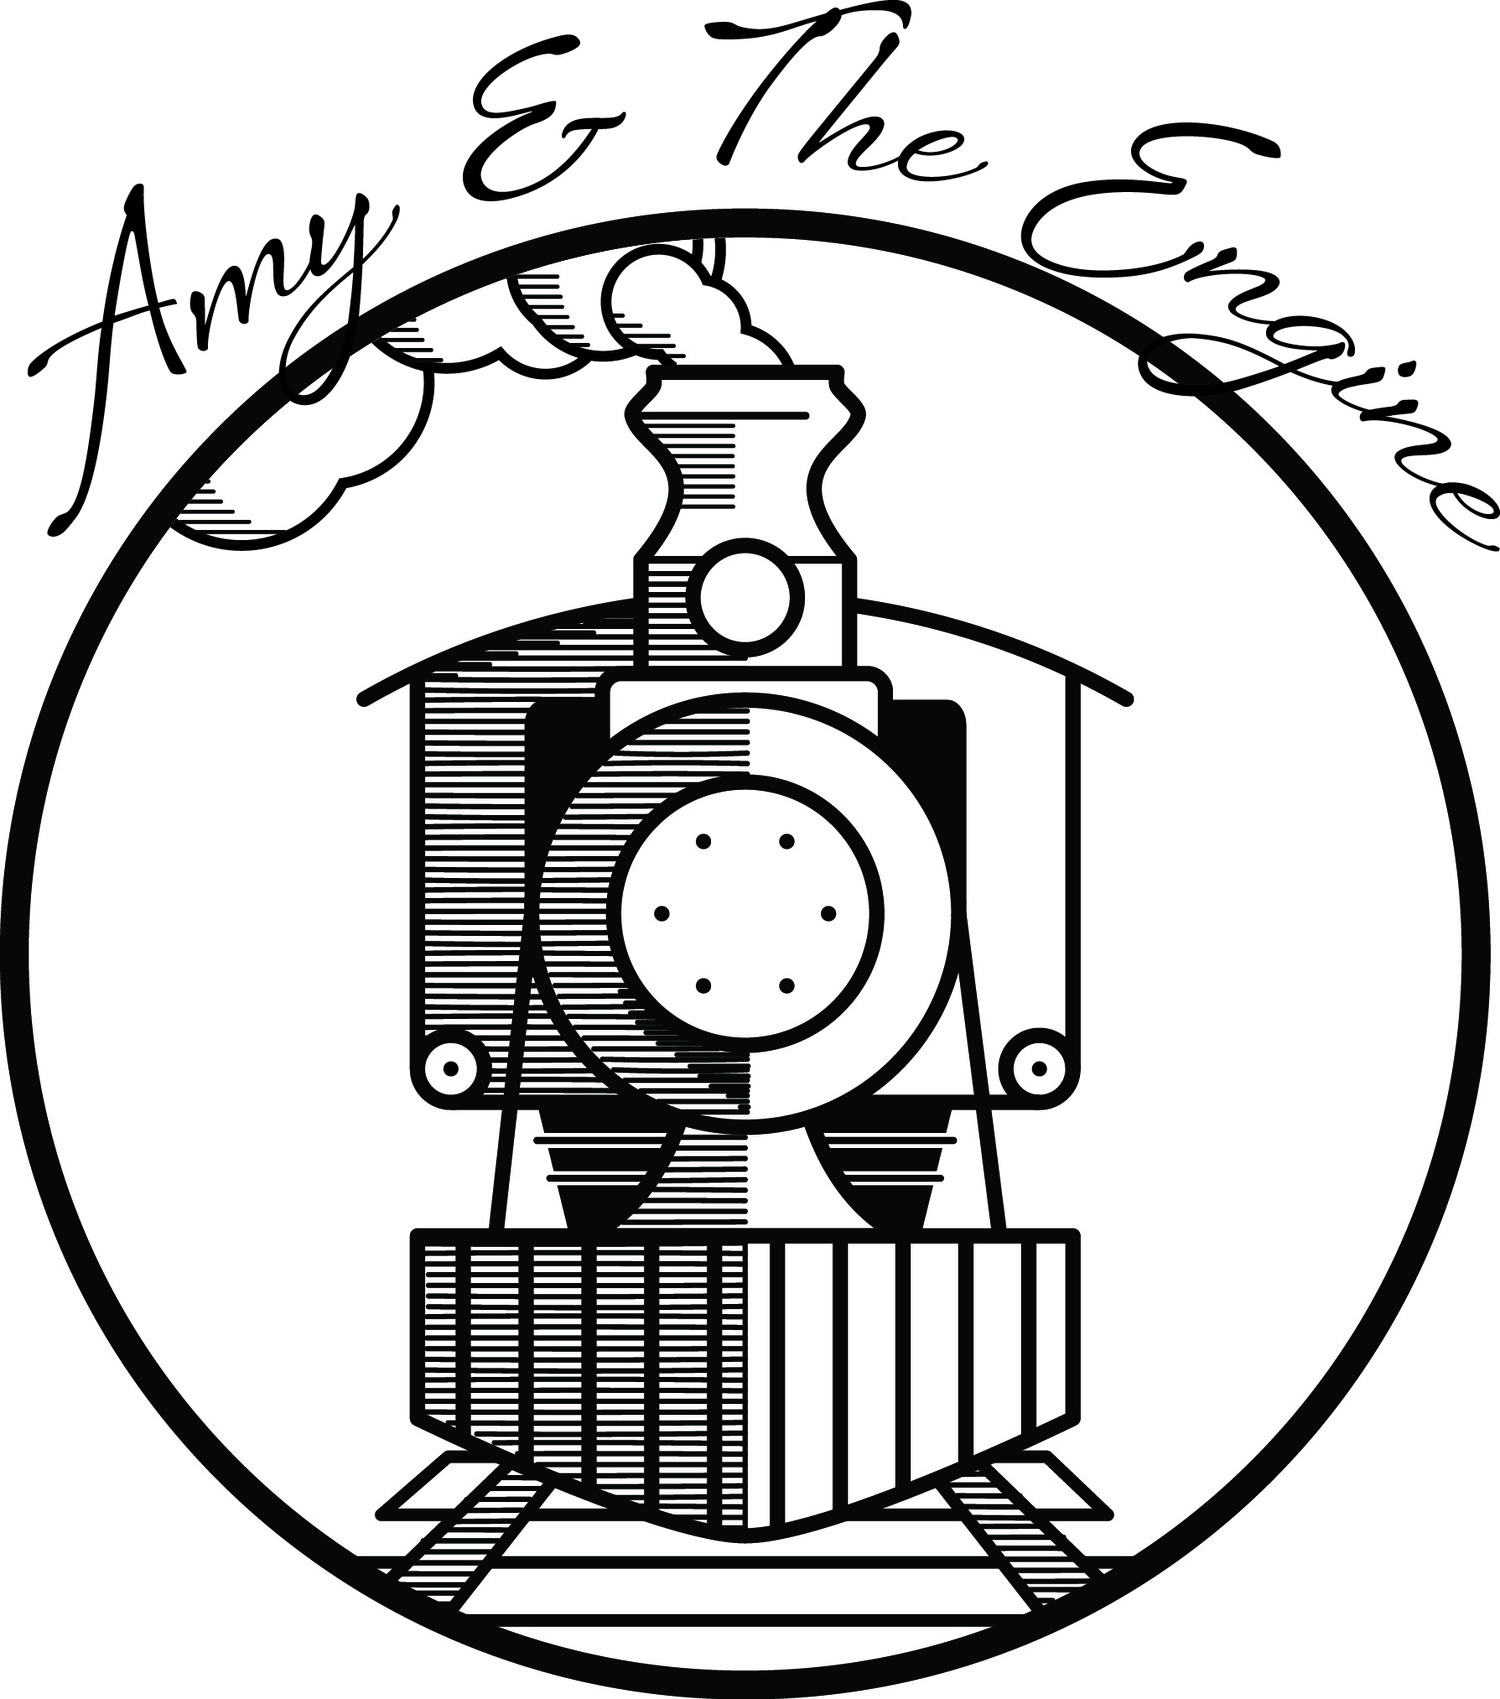 Amy & The Engine